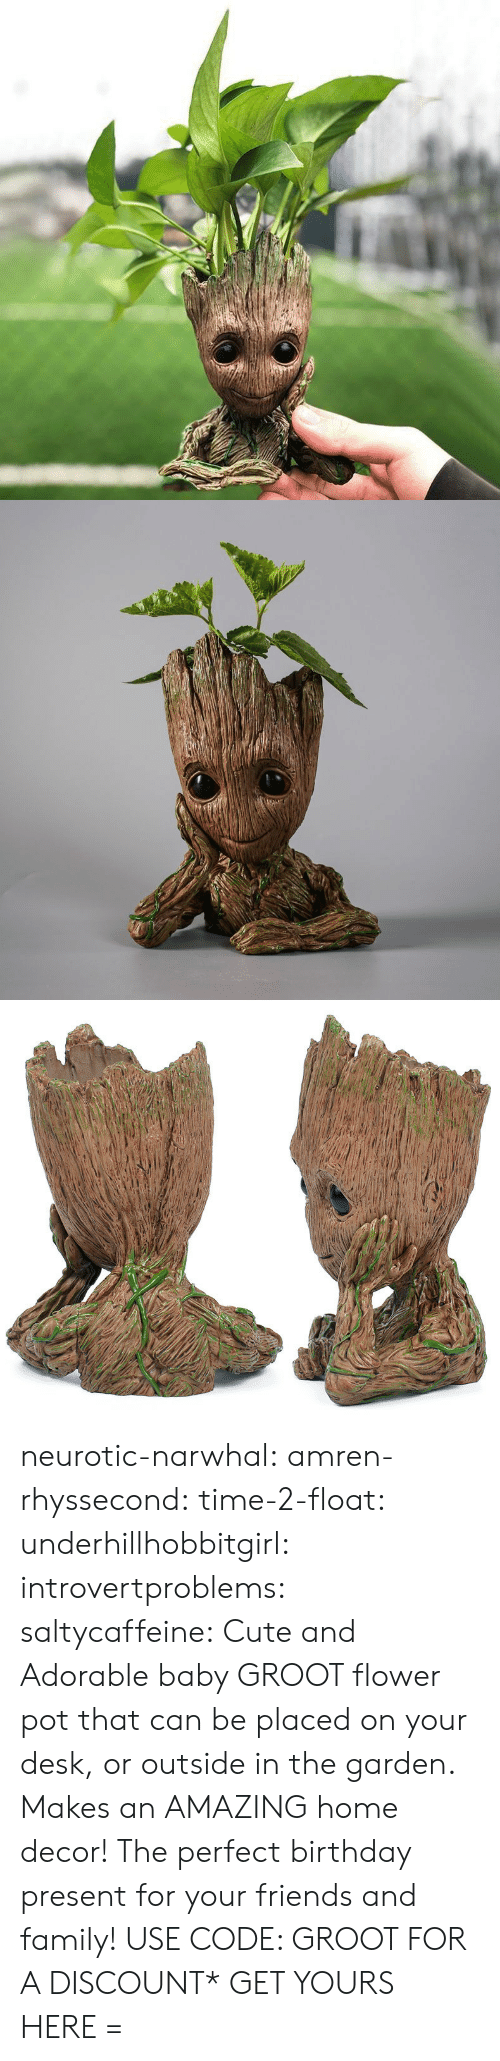 manna: neurotic-narwhal:  amren-rhyssecond: time-2-float:   underhillhobbitgirl:   introvertproblems:   saltycaffeine:  Cute and Adorable baby GROOT flower pot that can be placed on your desk, or outside in the garden. Makes an AMAZING home decor! The perfect birthday present for your friends and family! USE CODE: GROOT FOR A DISCOUNT* GET YOURS HERE =